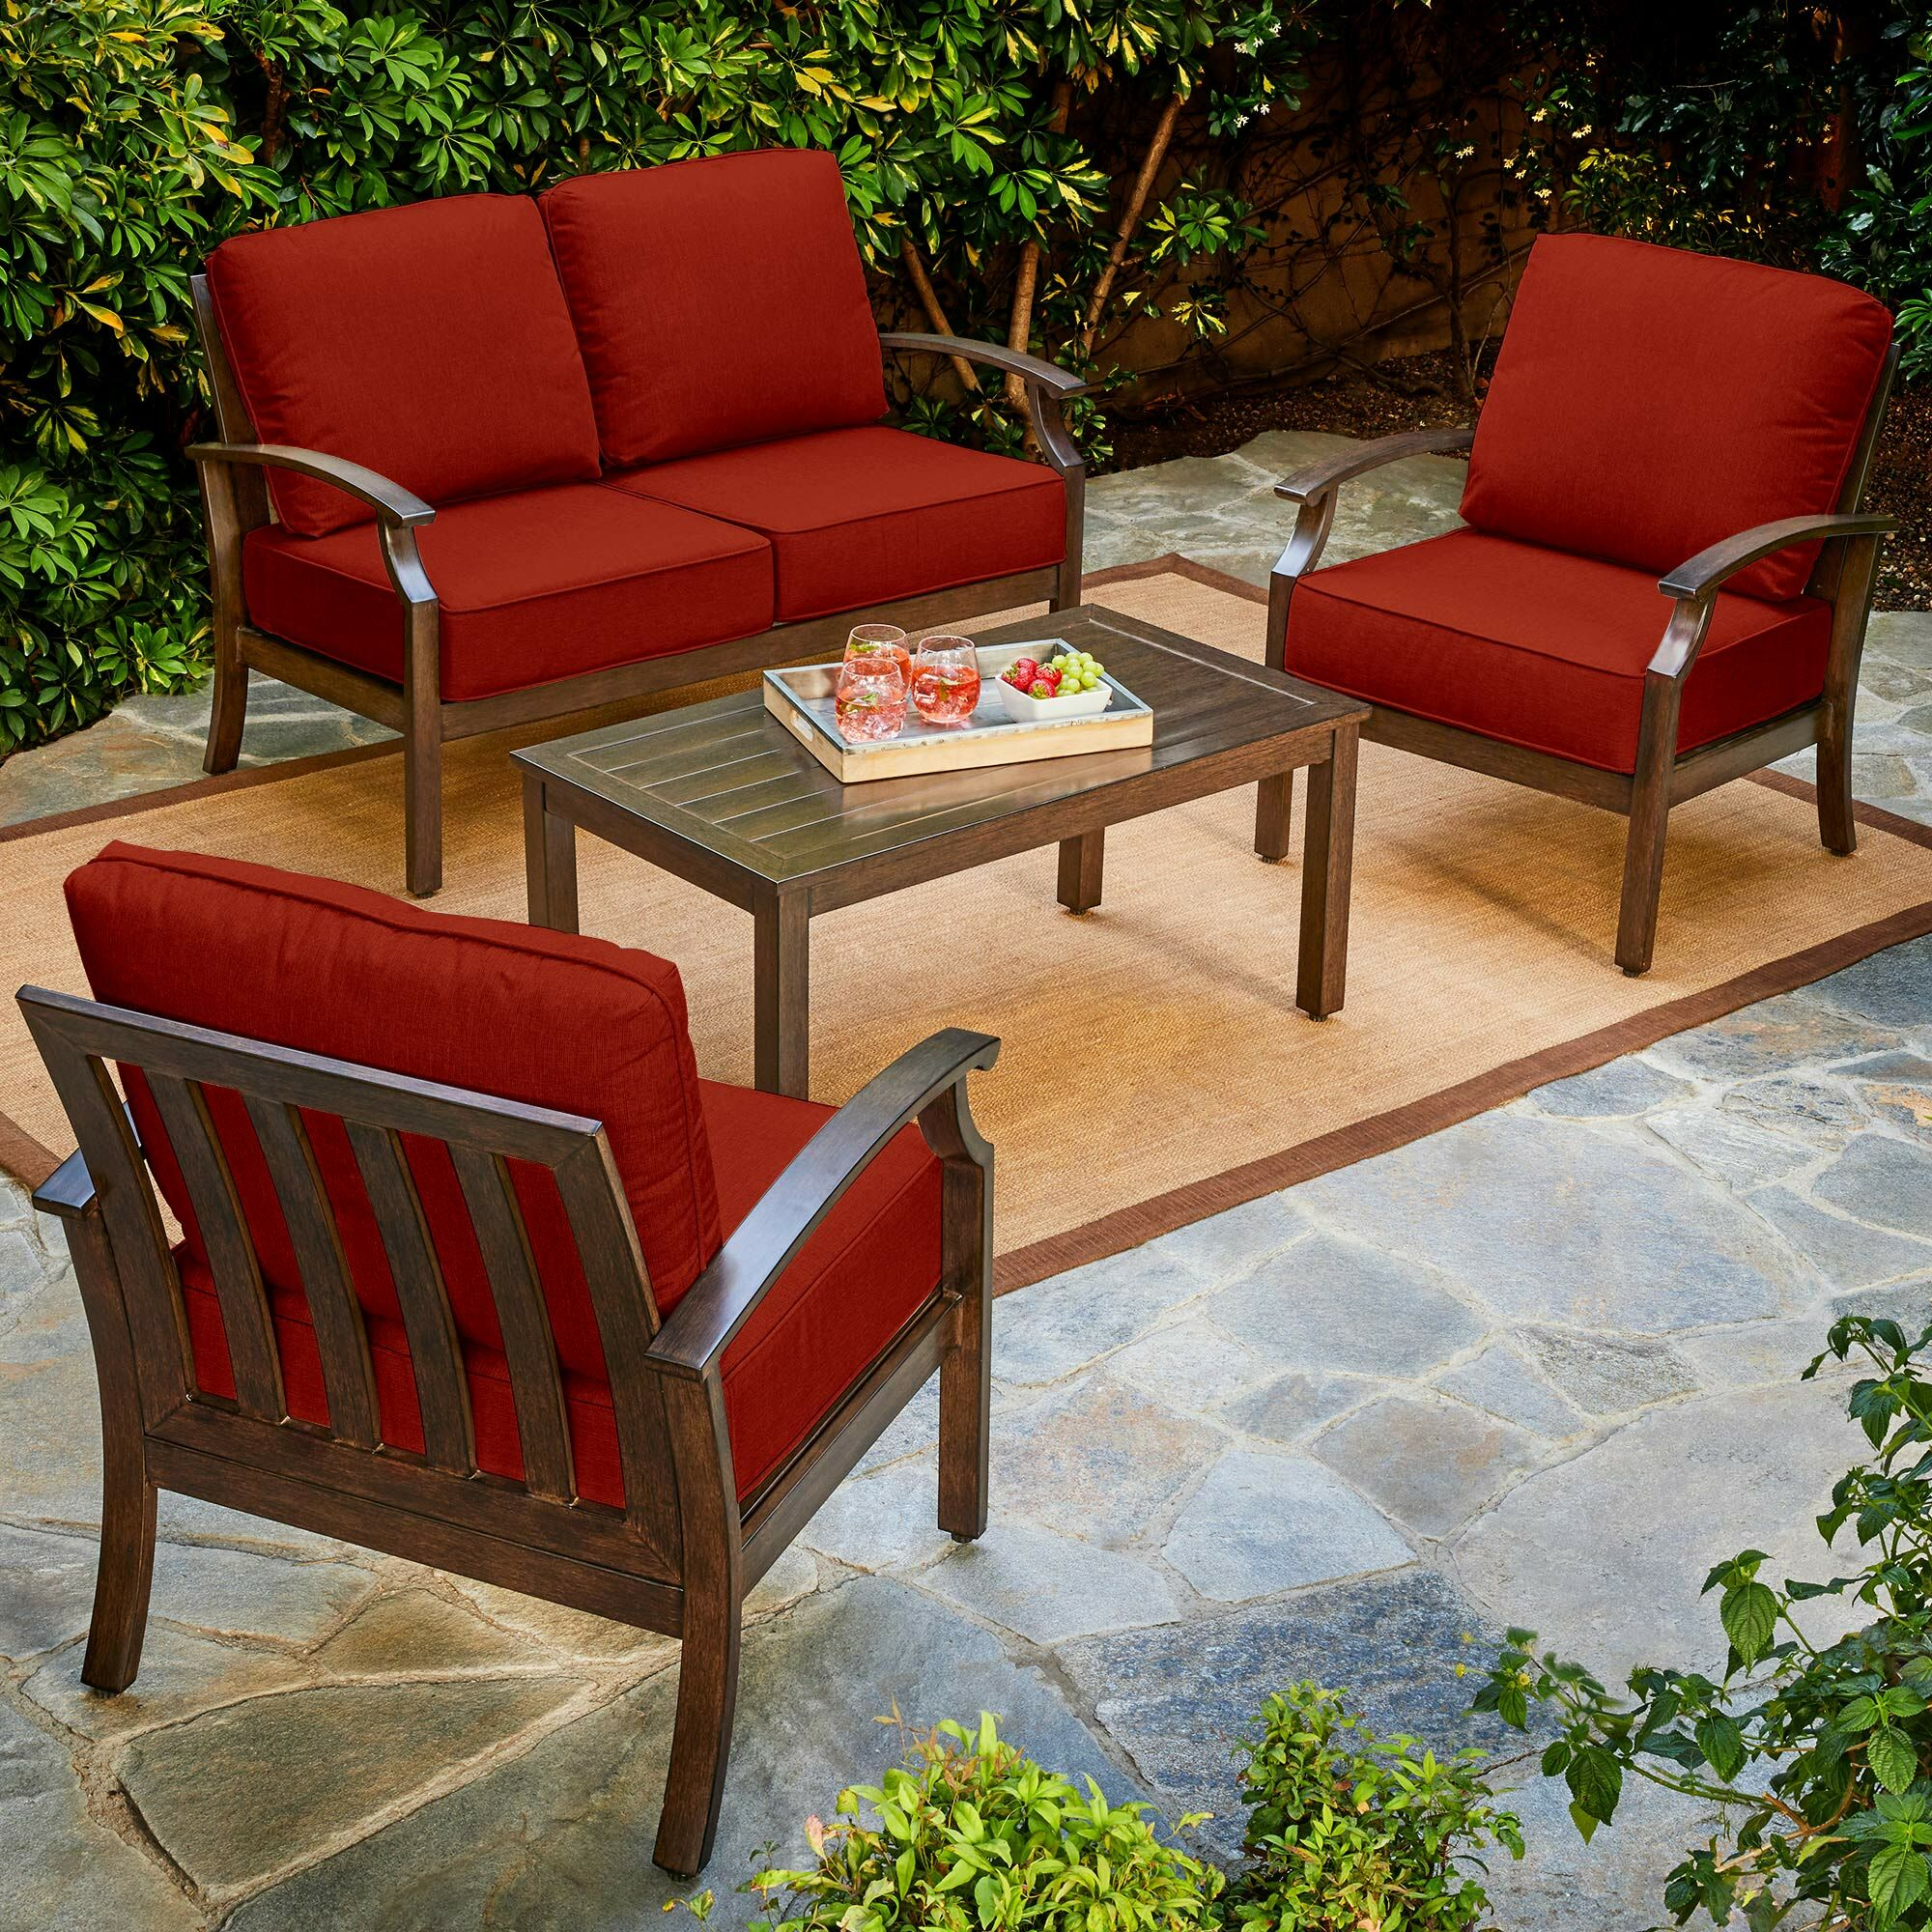 Yandel Bridgeport 4 Piece Conversation Set with Cushions Cushion Color: Red